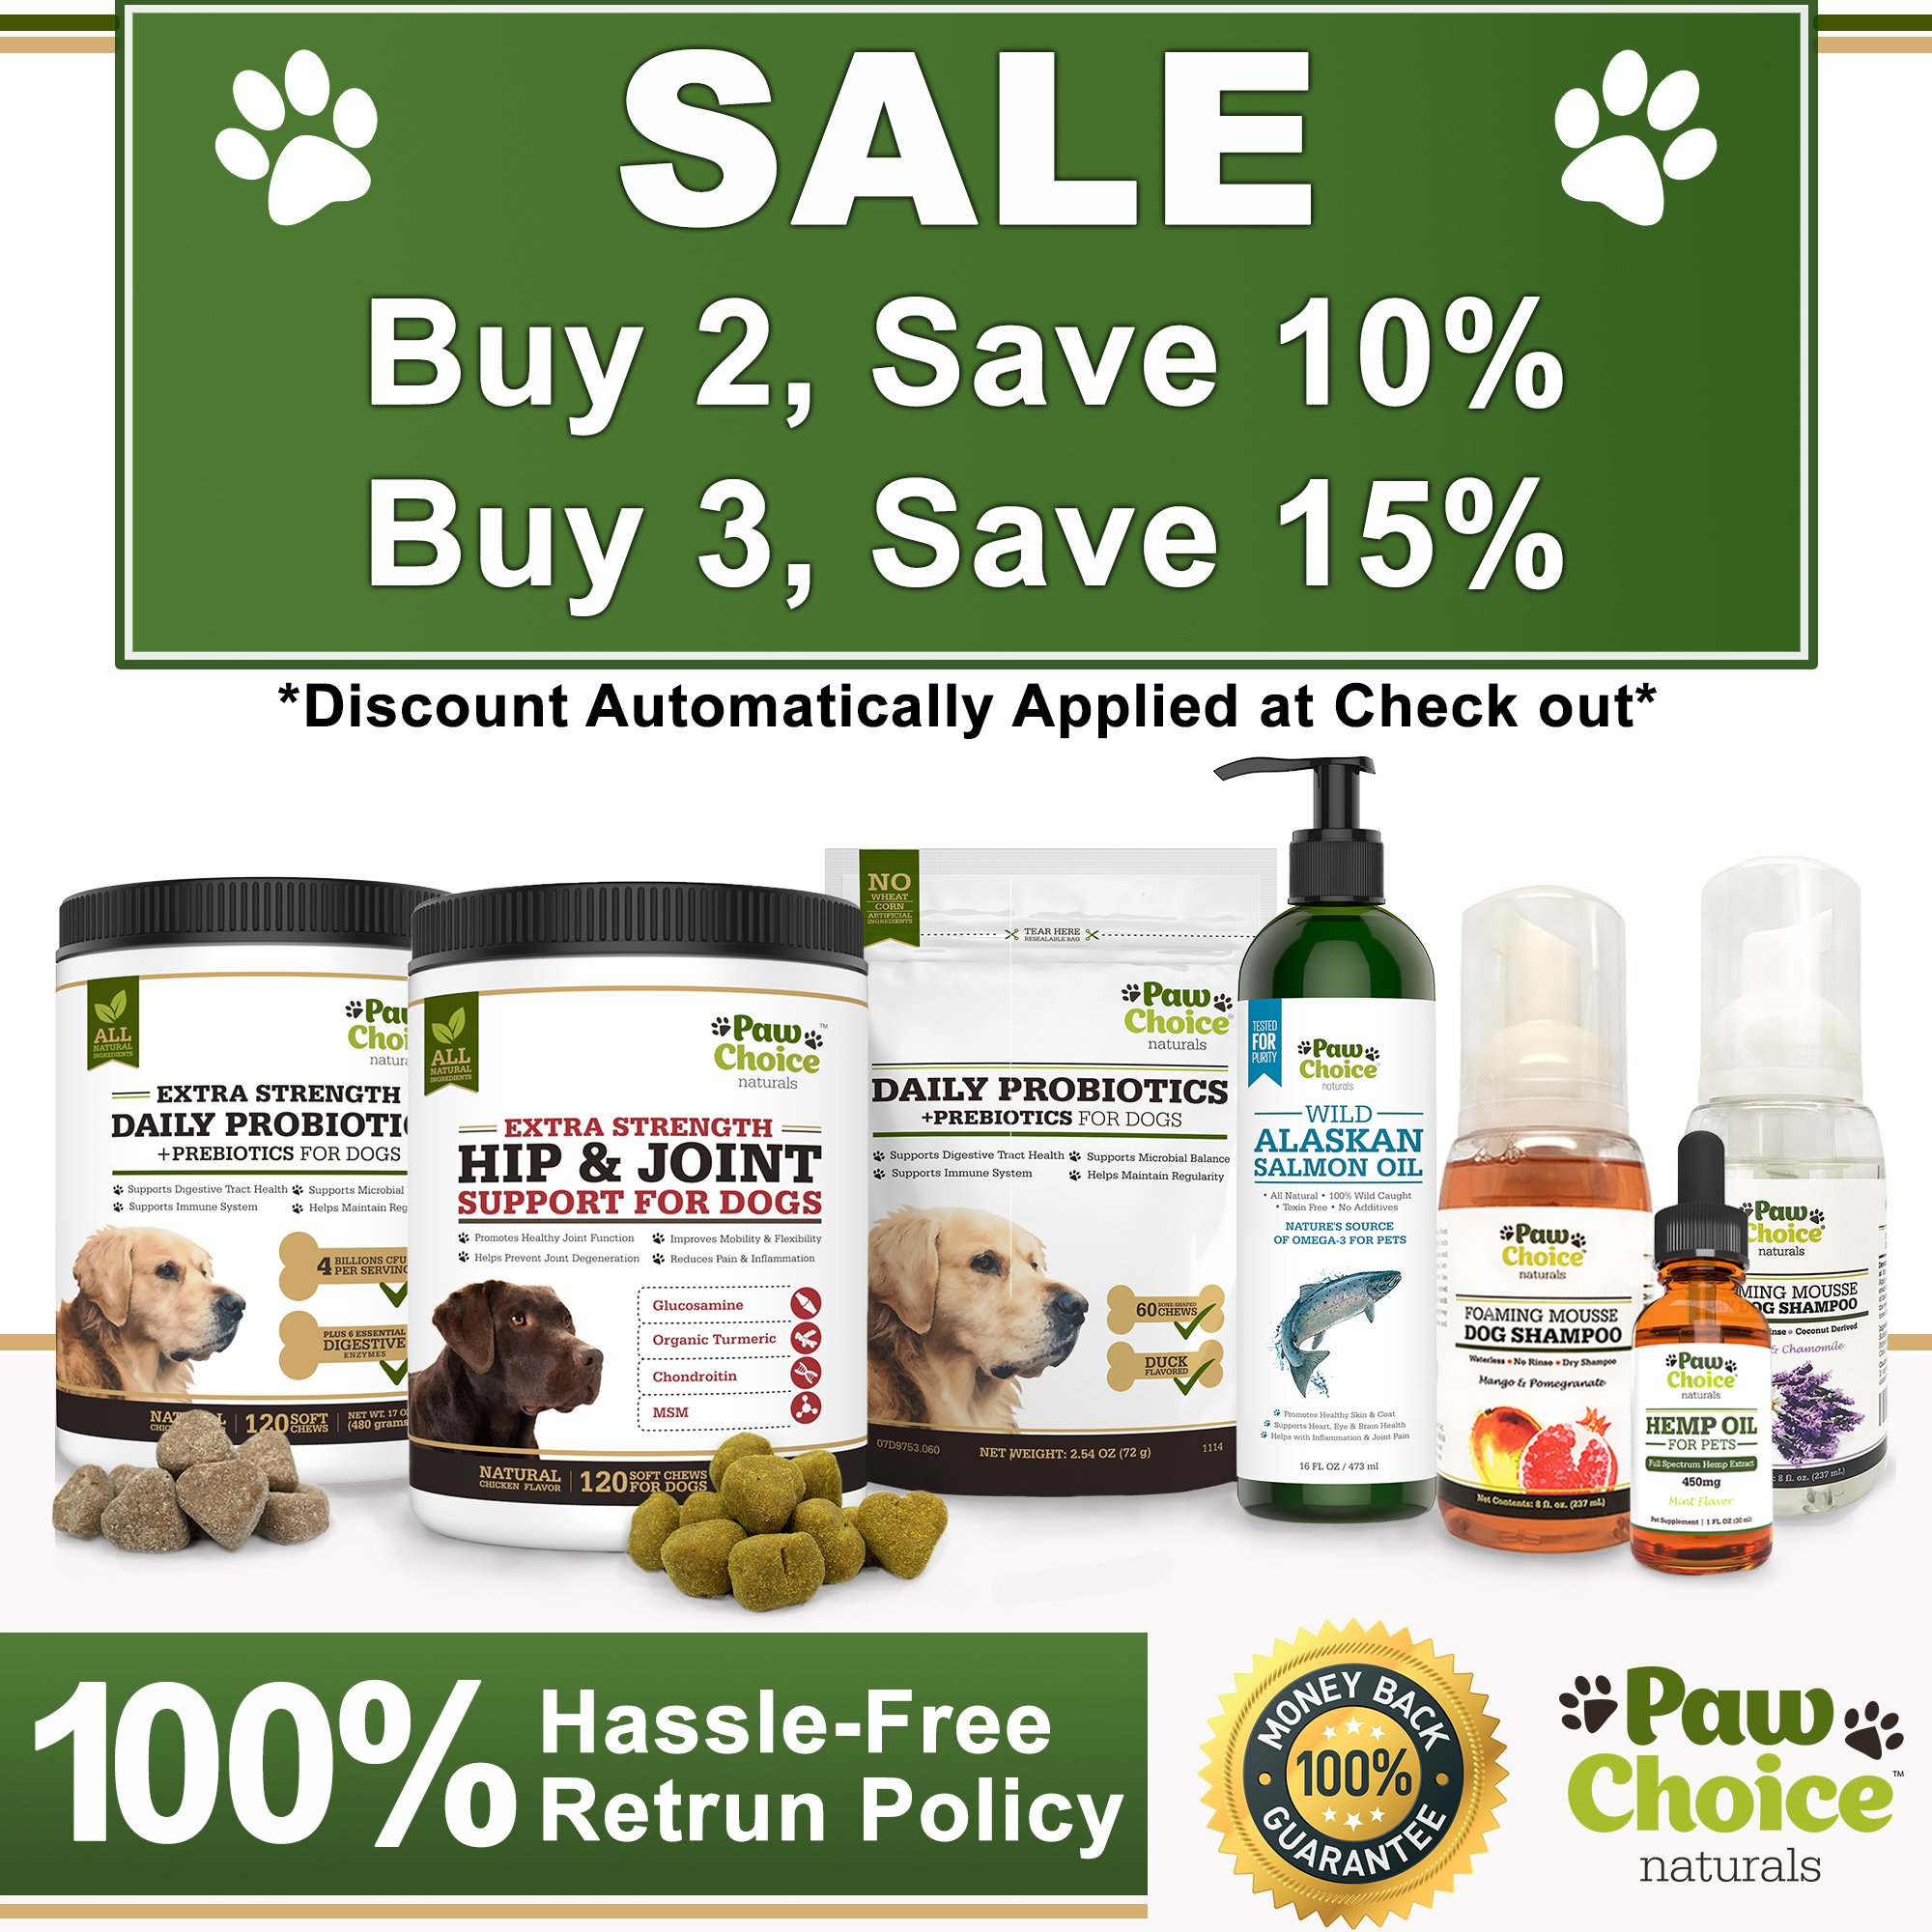 Probiotics for Dogs with Prebiotics - Daily Chews for Digestion, Regularity, Diarrhea Relief, Plus Supports Immune System and Health - Natural Supplement and Treat Made in USA by Paw Choice (Image #7)